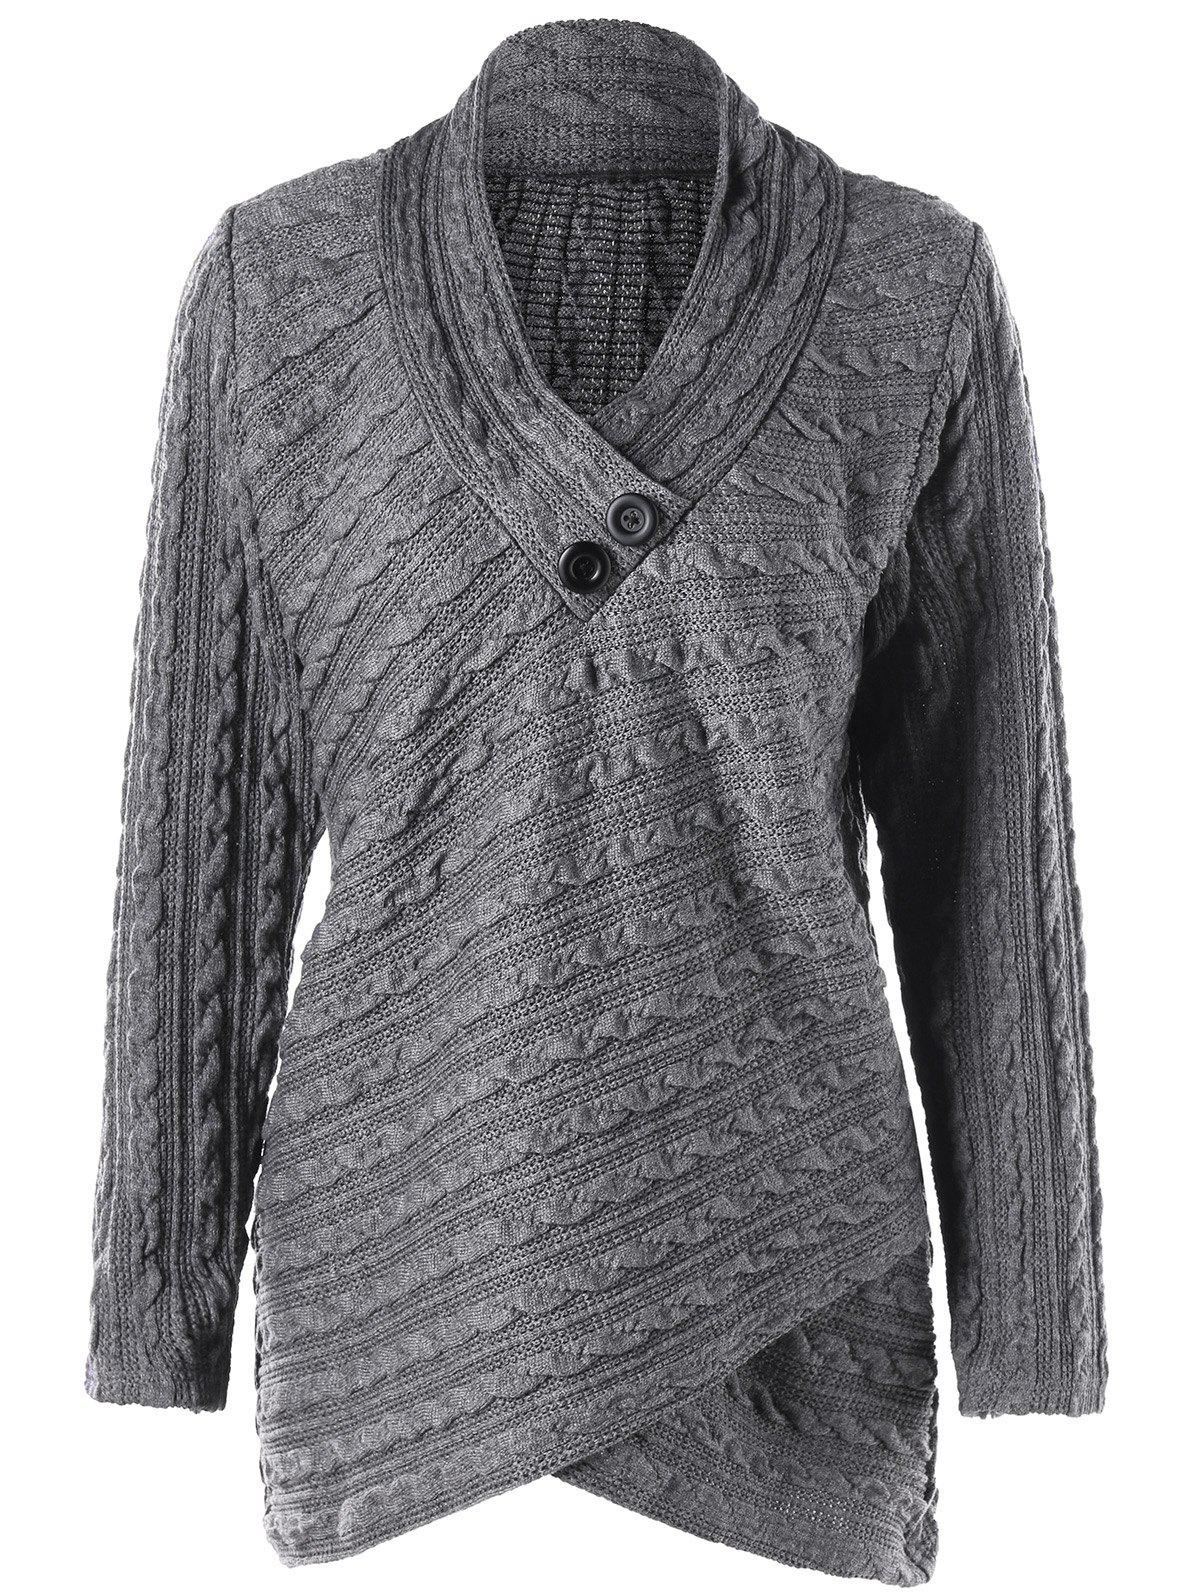 Plus Size Cable Knit Overlap Fitted TopWOMEN<br><br>Size: 5XL; Color: GRAY; Type: Pullovers; Material: Acrylic,Polyester; Sleeve Length: Full; Collar: Stand-Up Collar; Style: Casual; Season: Fall,Spring; Pattern Type: Solid; Weight: 0.6000kg; Package Contents: 1 x Top;